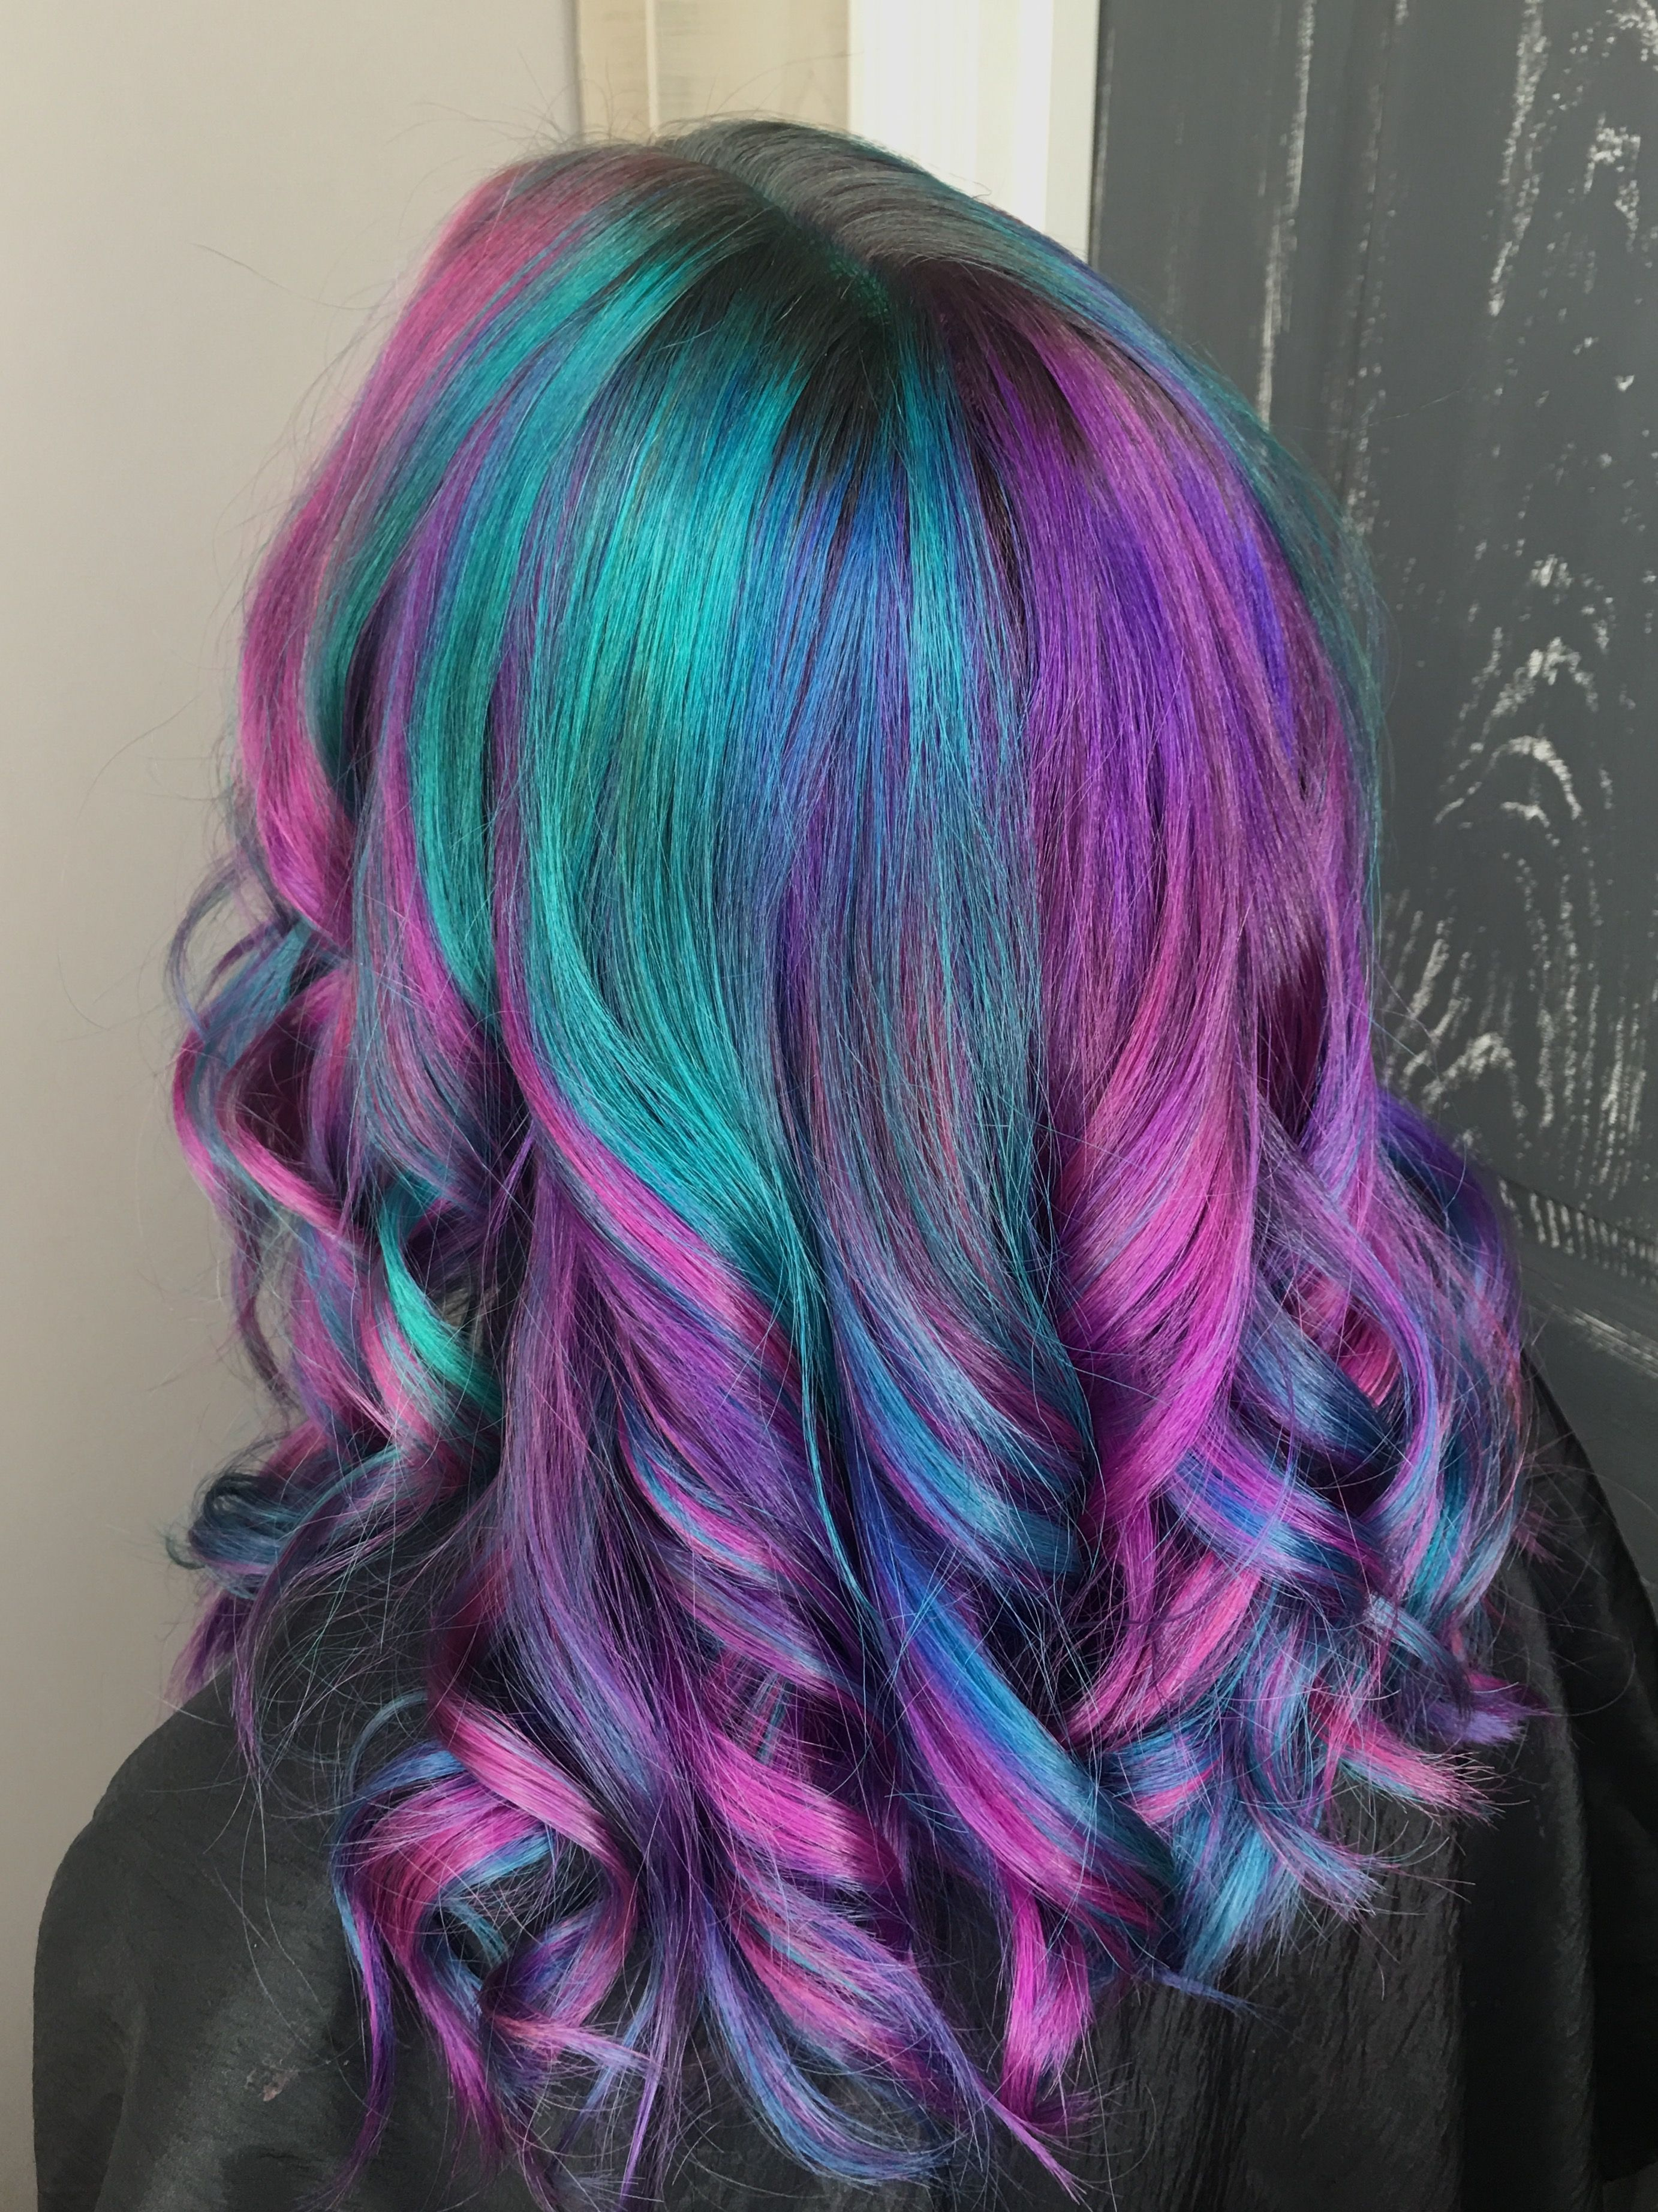 Pulpriot Haircolor Creativecolor Hair Beauty Samanthabeth85